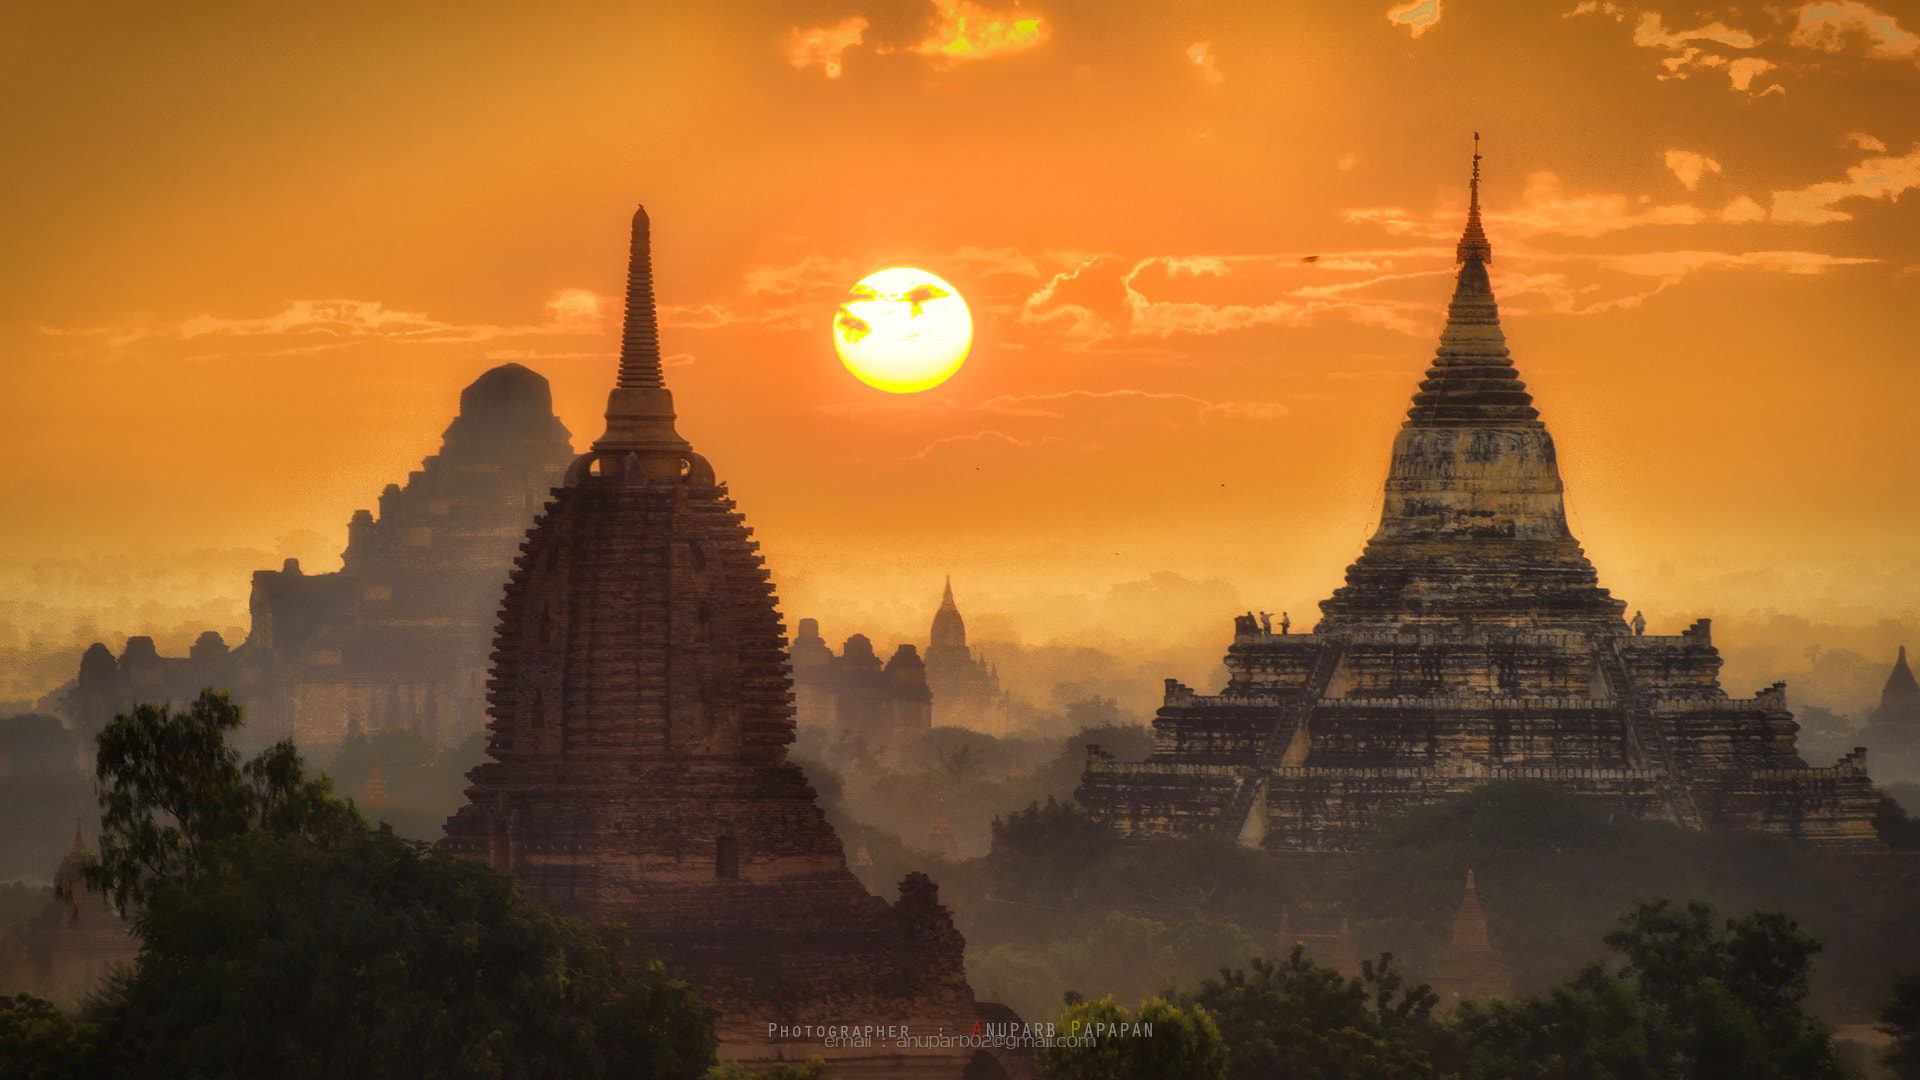 Photograph Good Morning Bagan by Anuparb Papapan on 500px